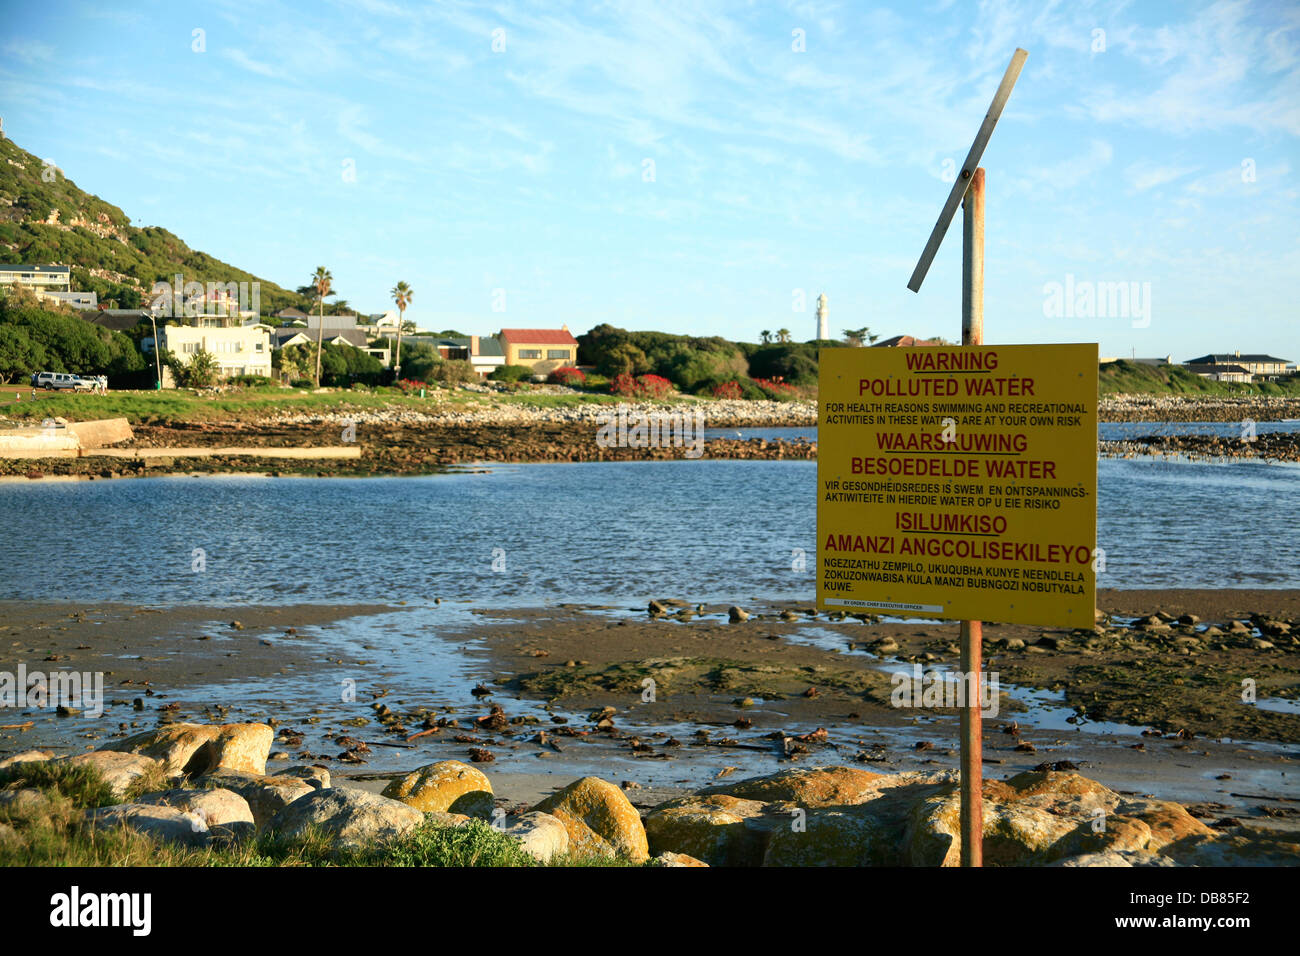 warning of polluted water near Kommetjie, Cape Town - Stock Image